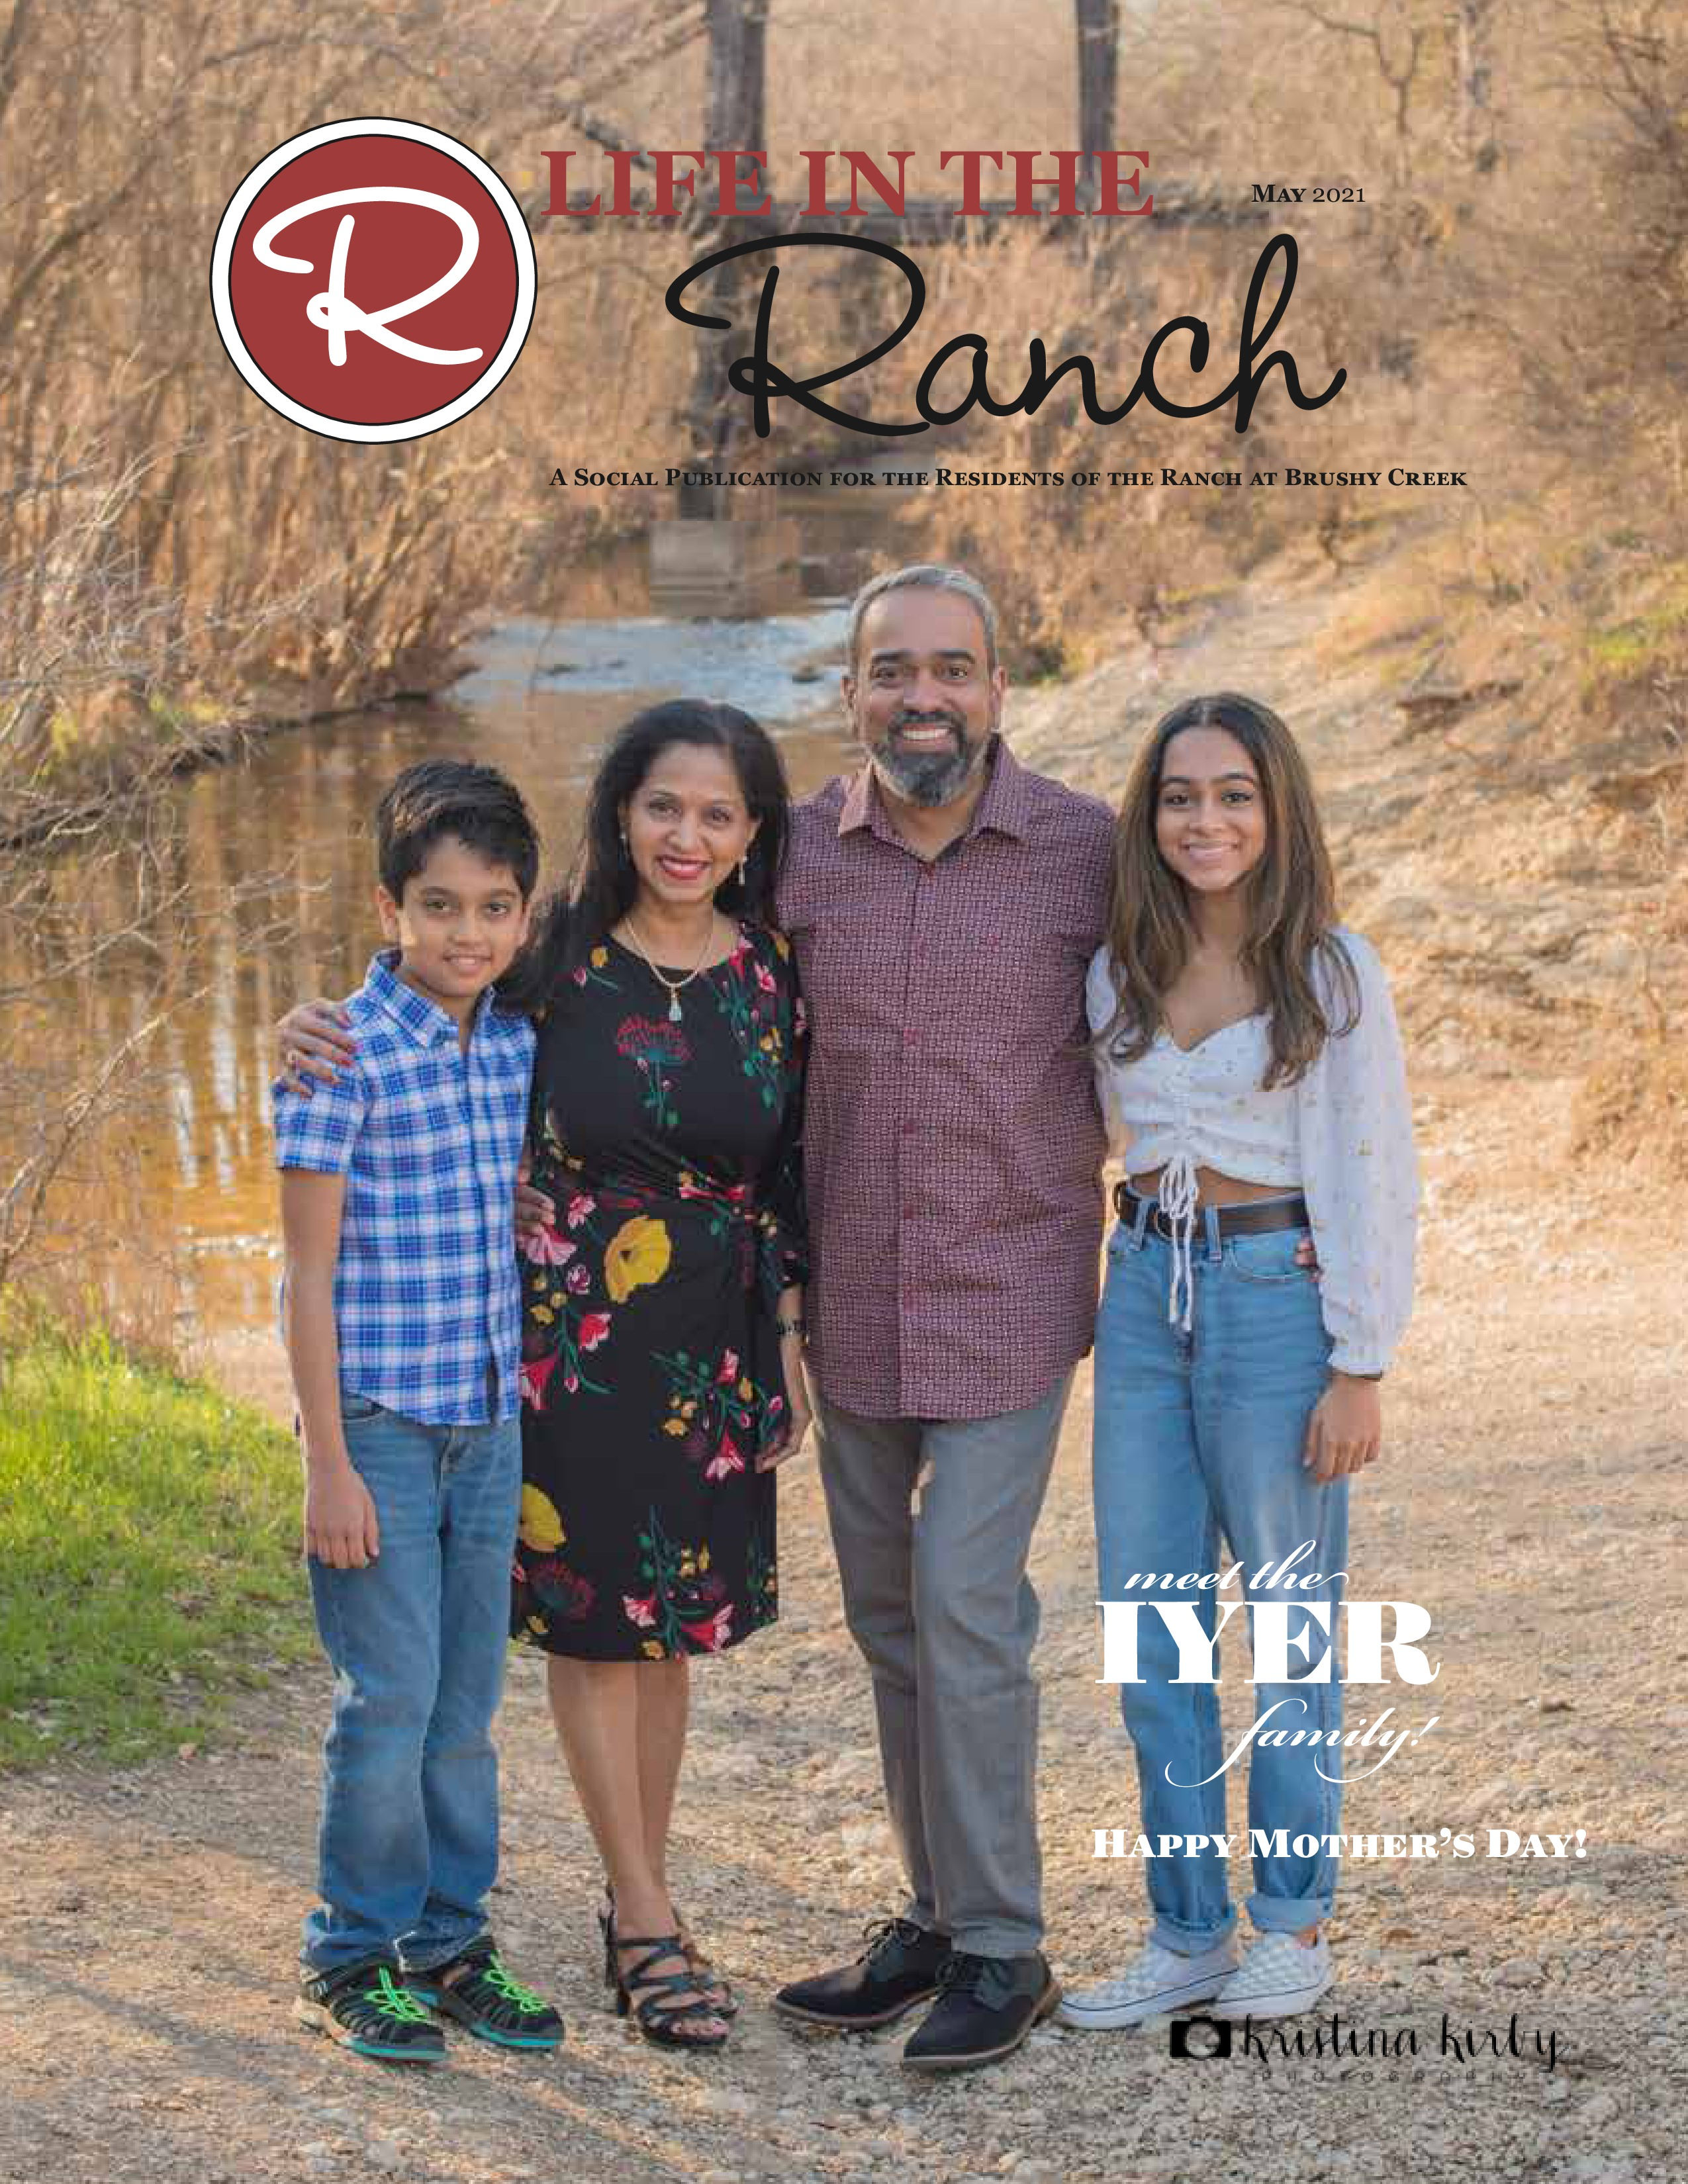 Life in the Ranch 2021-05-01